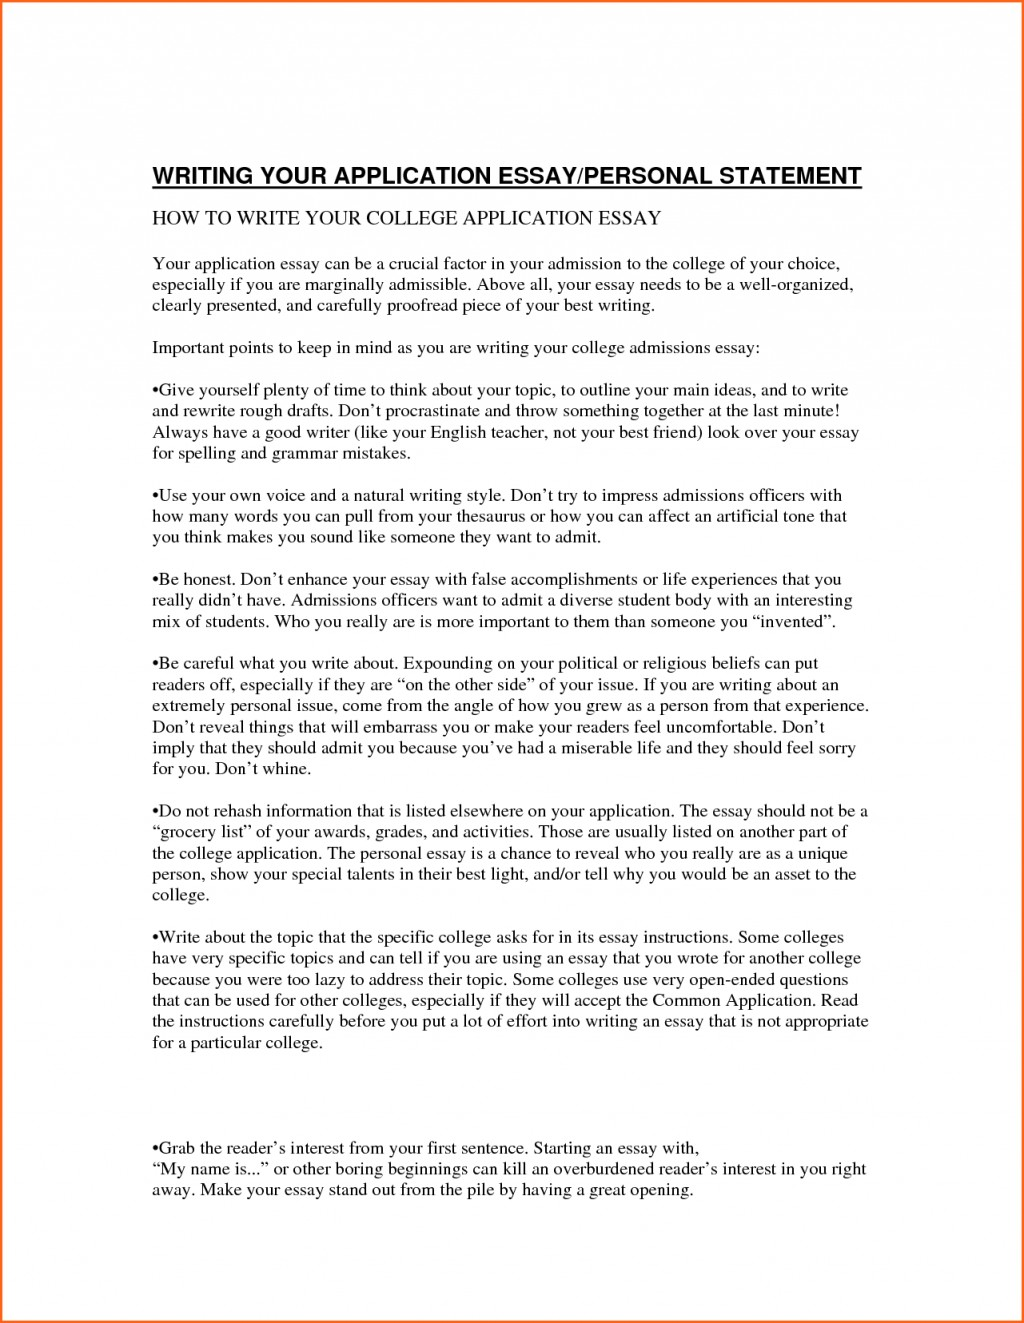 003 Essay Example Website That Writes Essays For Wonderful You Yahoo Answers Can Write Large